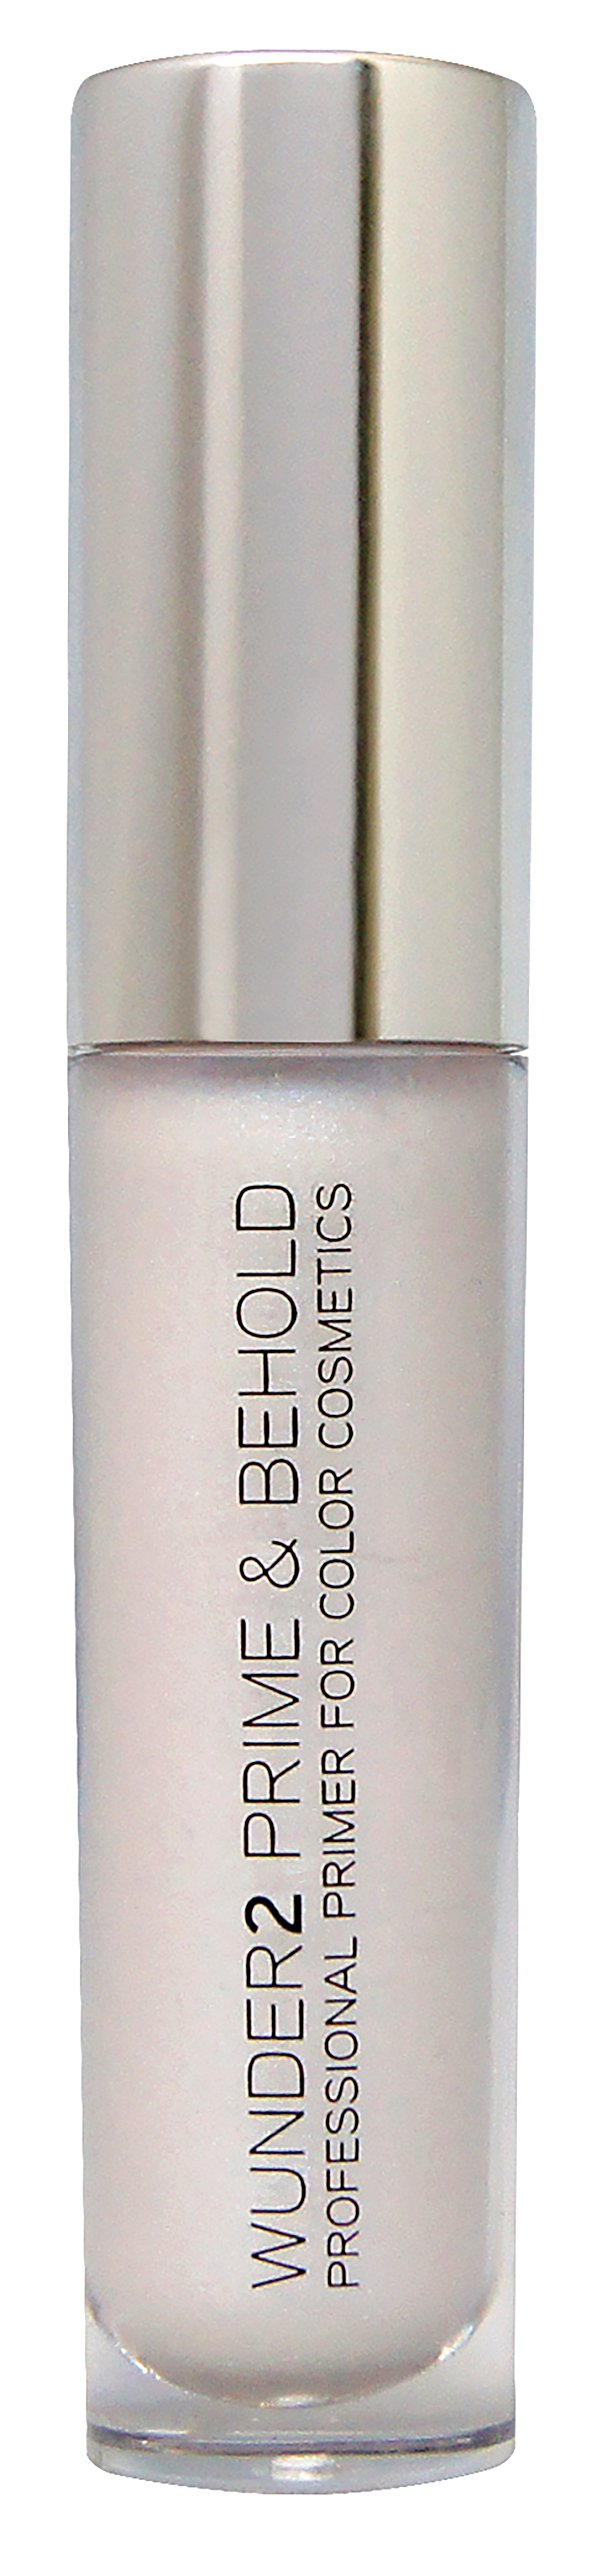 WUNDER2 PRIME & BEHOLD Waterproof Lip and Eyeshadow Primer Makeup for Color Cosmetics by Wunder2